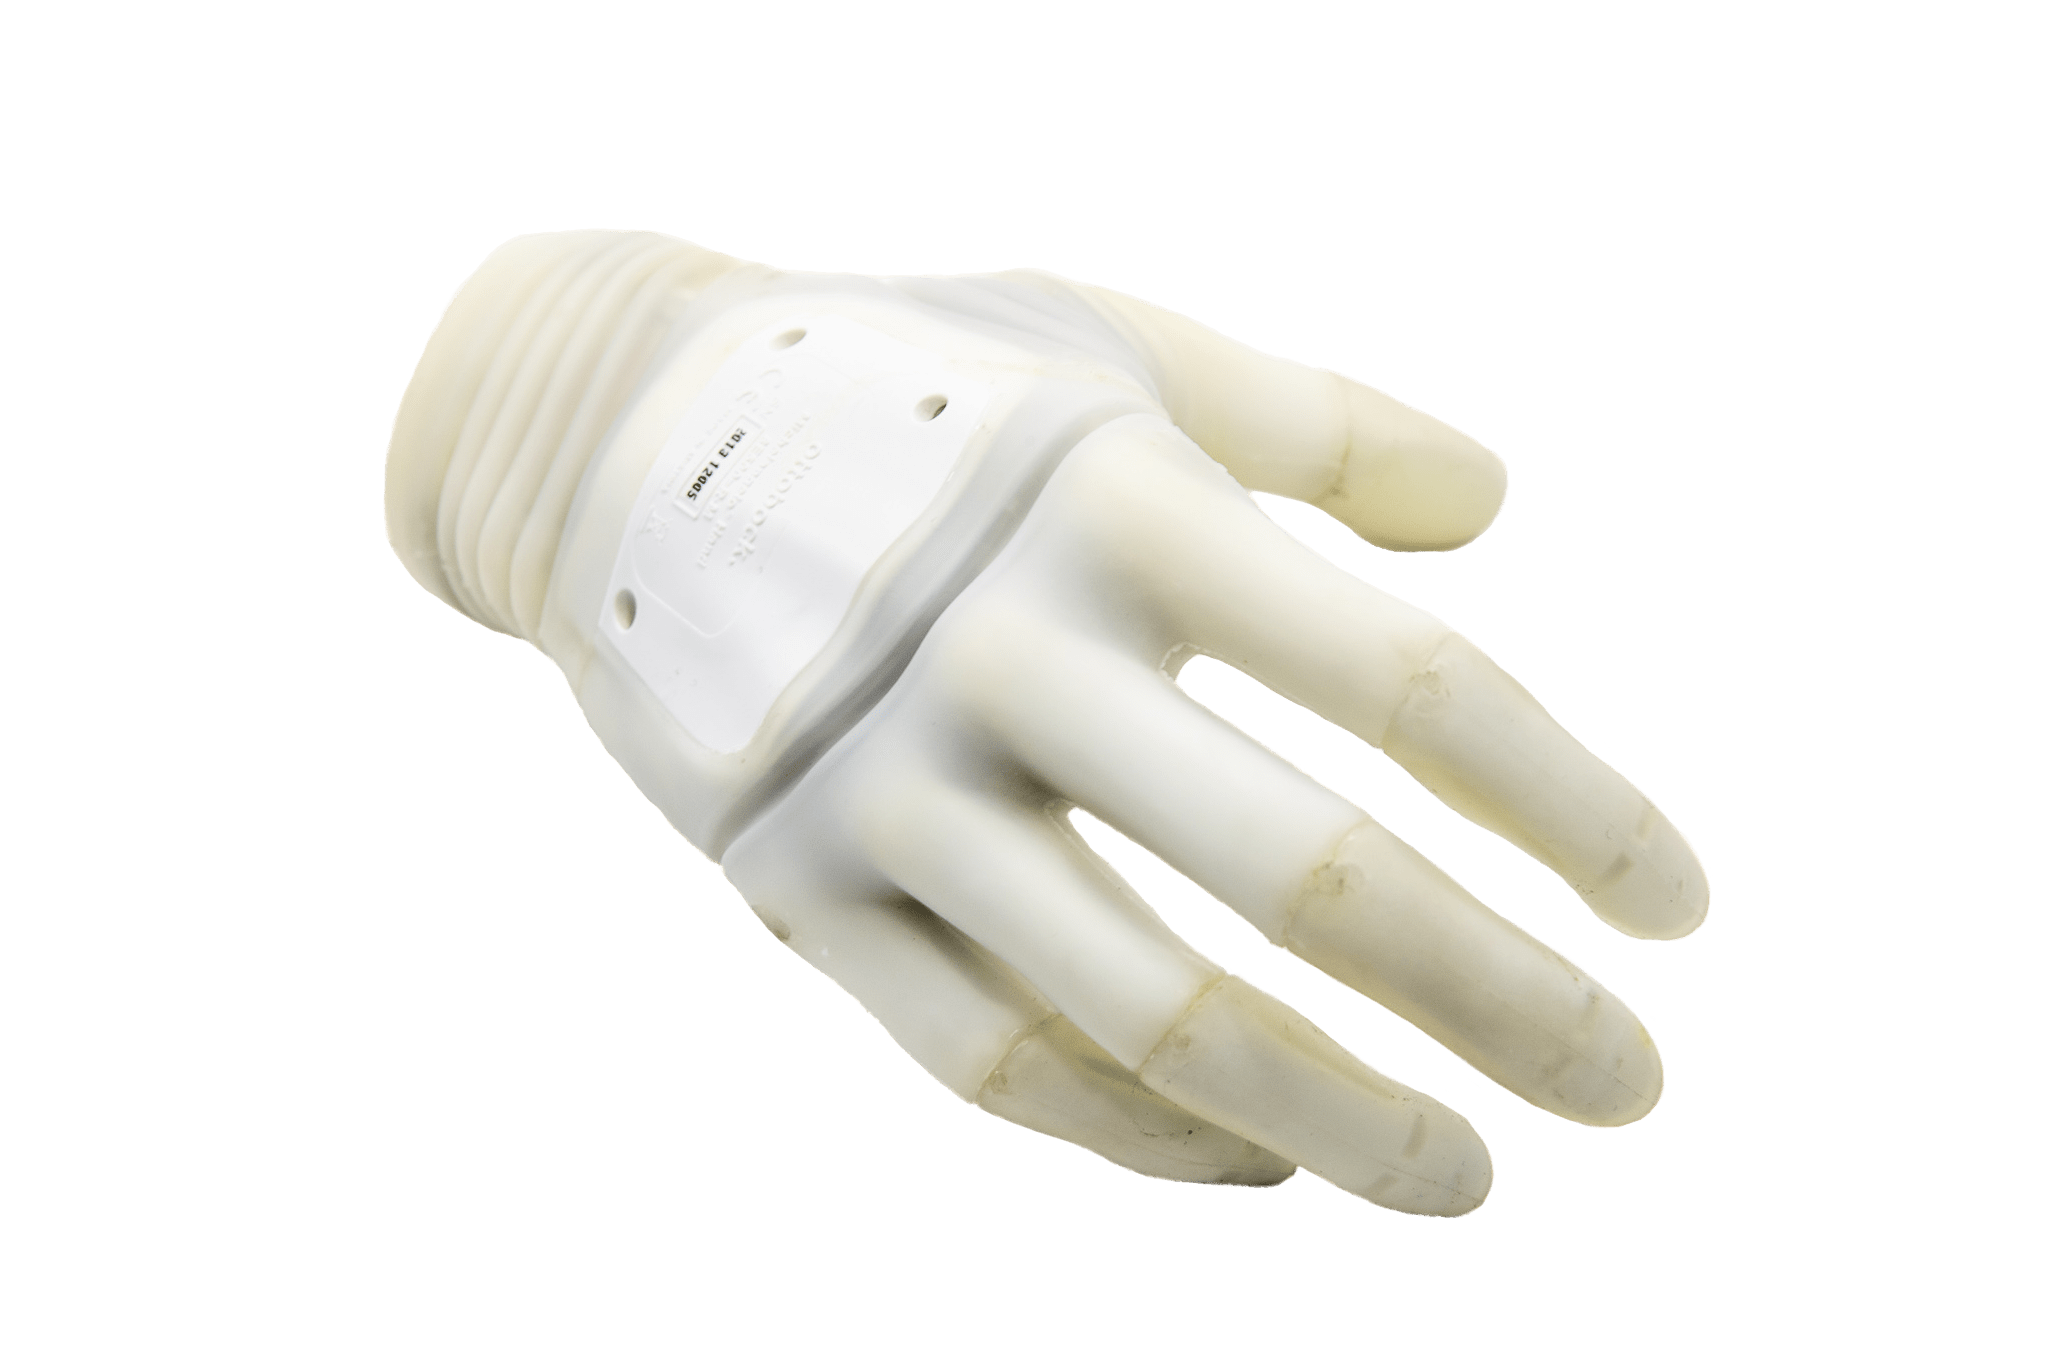 A top view of a prosthetic hand.